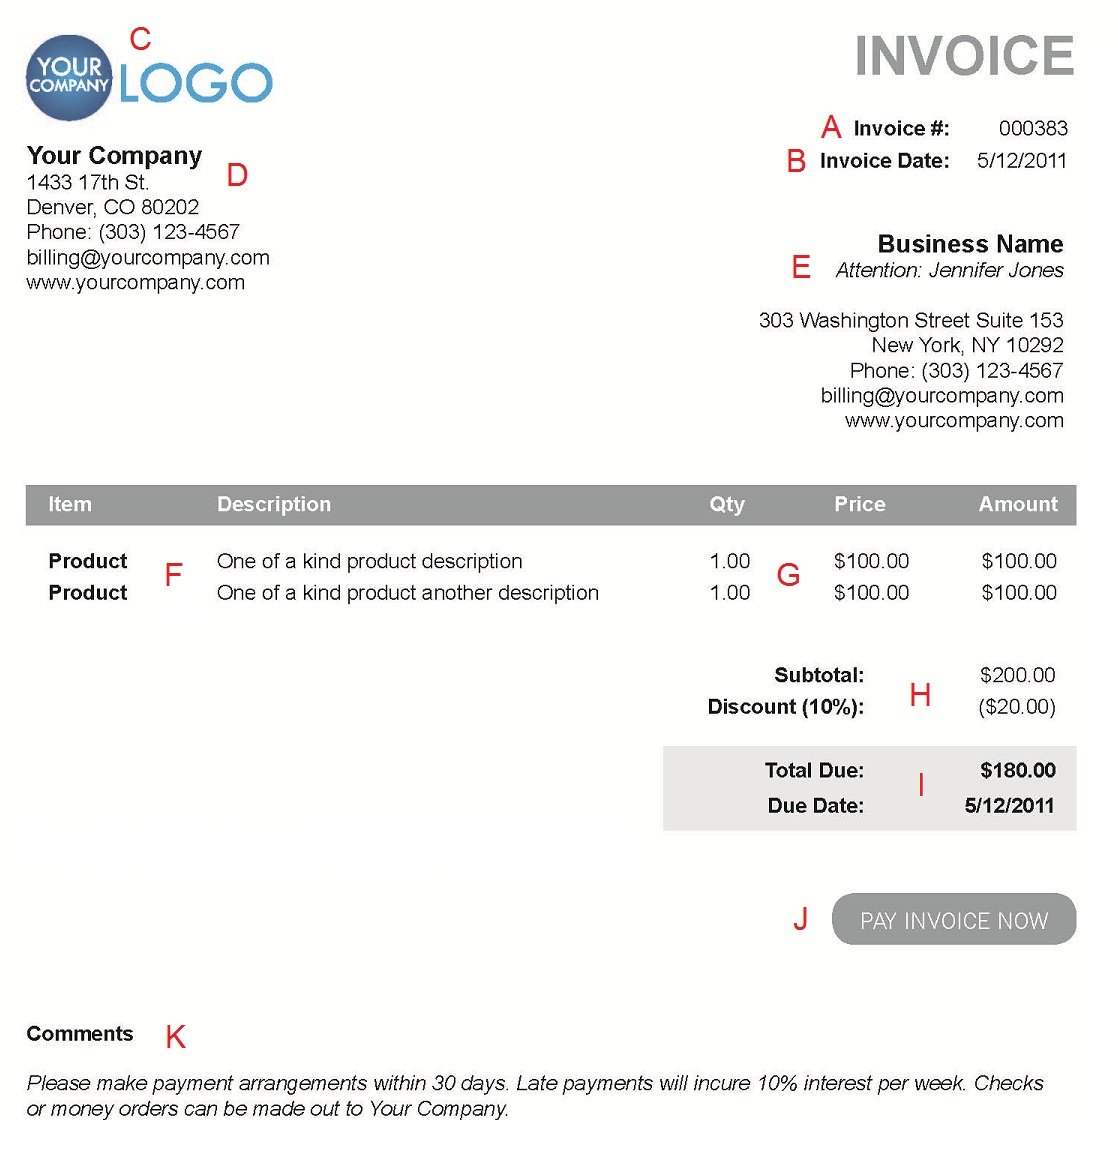 Coolmathgamesus  Unusual The  Different Sections Of An Electronic Payment Invoice With Outstanding A  With Beautiful Payment Terms For Invoices Also Invoice Validation In Addition Invoice Software For Mac Free And Tax Invoice Not Registered For Gst As Well As Export Invoices Additionally Sample Service Invoice Template From Paysimplecom With Coolmathgamesus  Outstanding The  Different Sections Of An Electronic Payment Invoice With Beautiful A  And Unusual Payment Terms For Invoices Also Invoice Validation In Addition Invoice Software For Mac Free From Paysimplecom